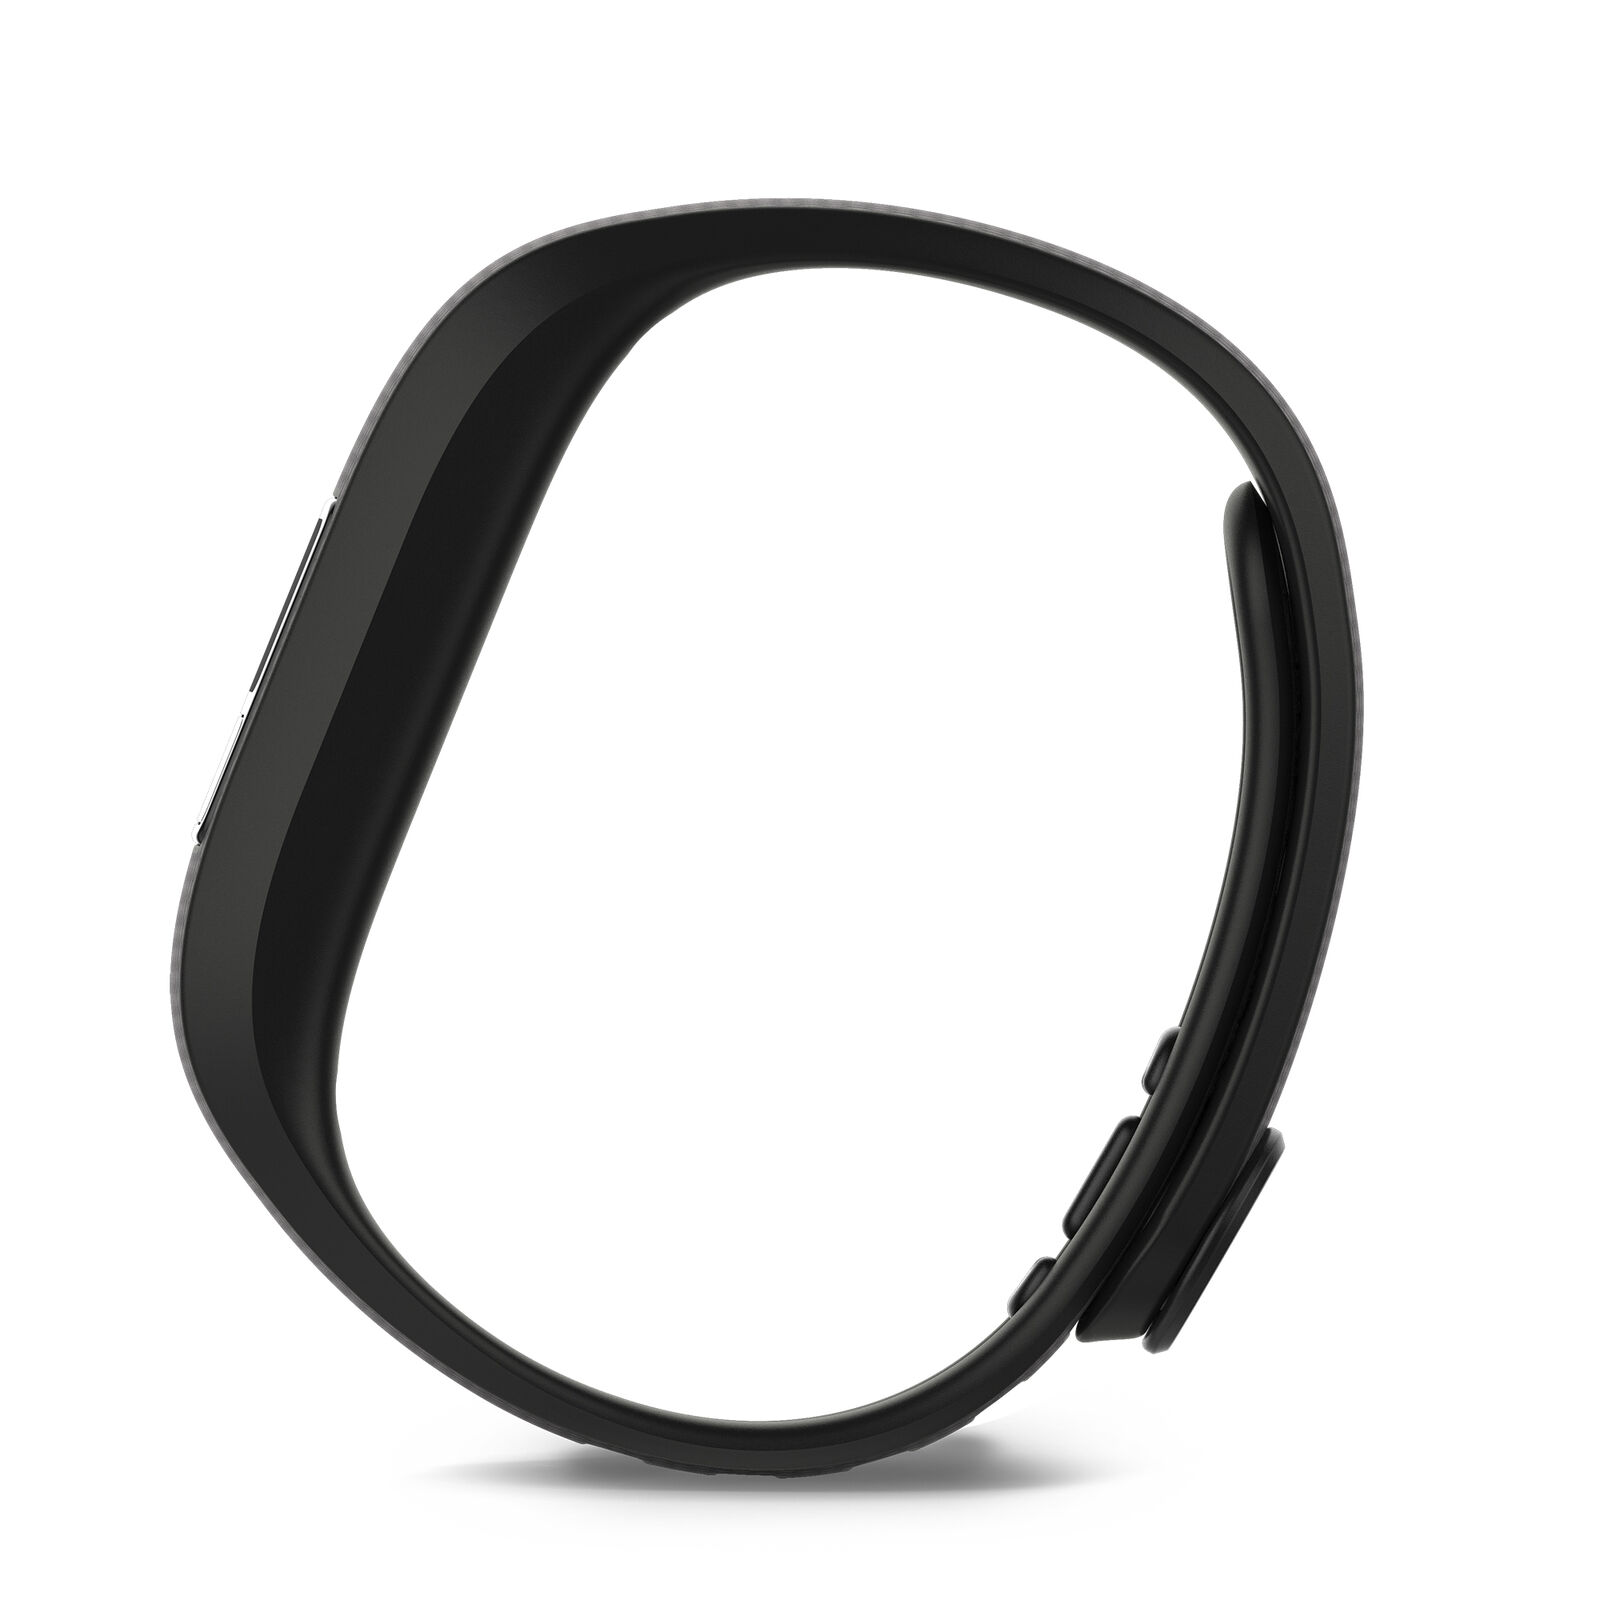 Умный браслет Garmin Vivofit 3 Black (Refurbished). Фото N3